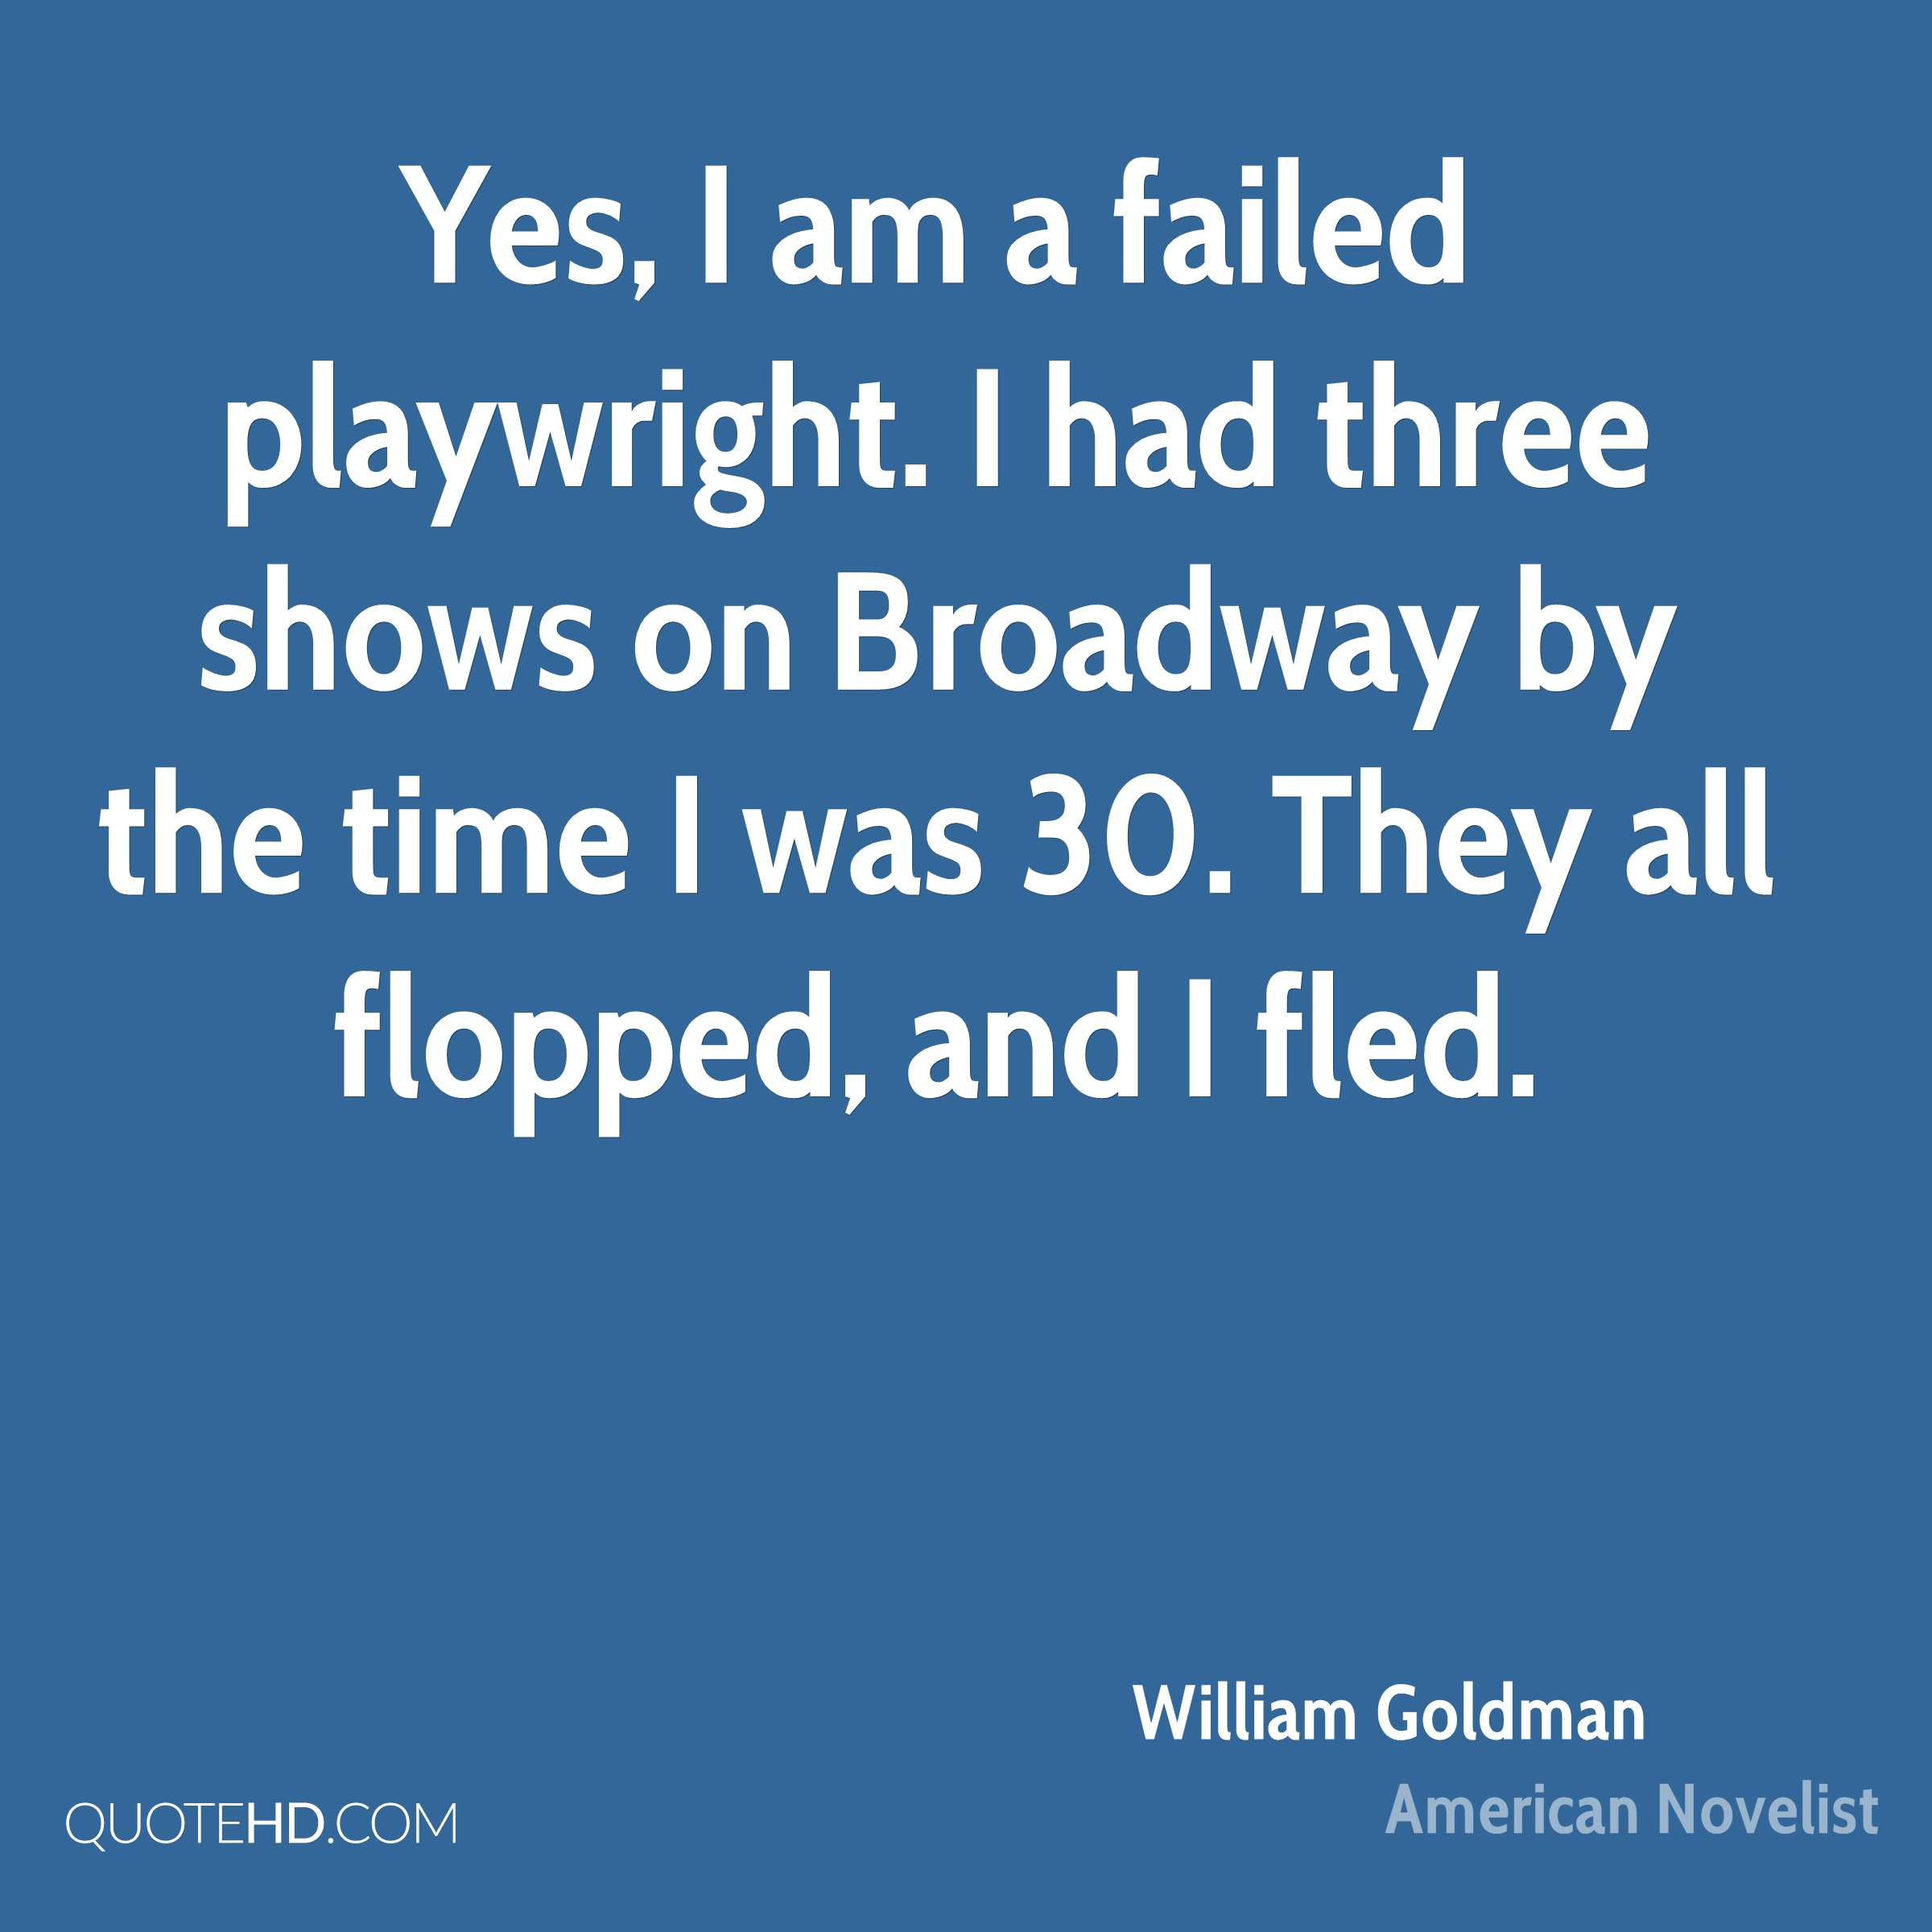 Yes, I am a failed playwright. I had three shows on Broadway by the time I was 30. They all flopped, and I fled.